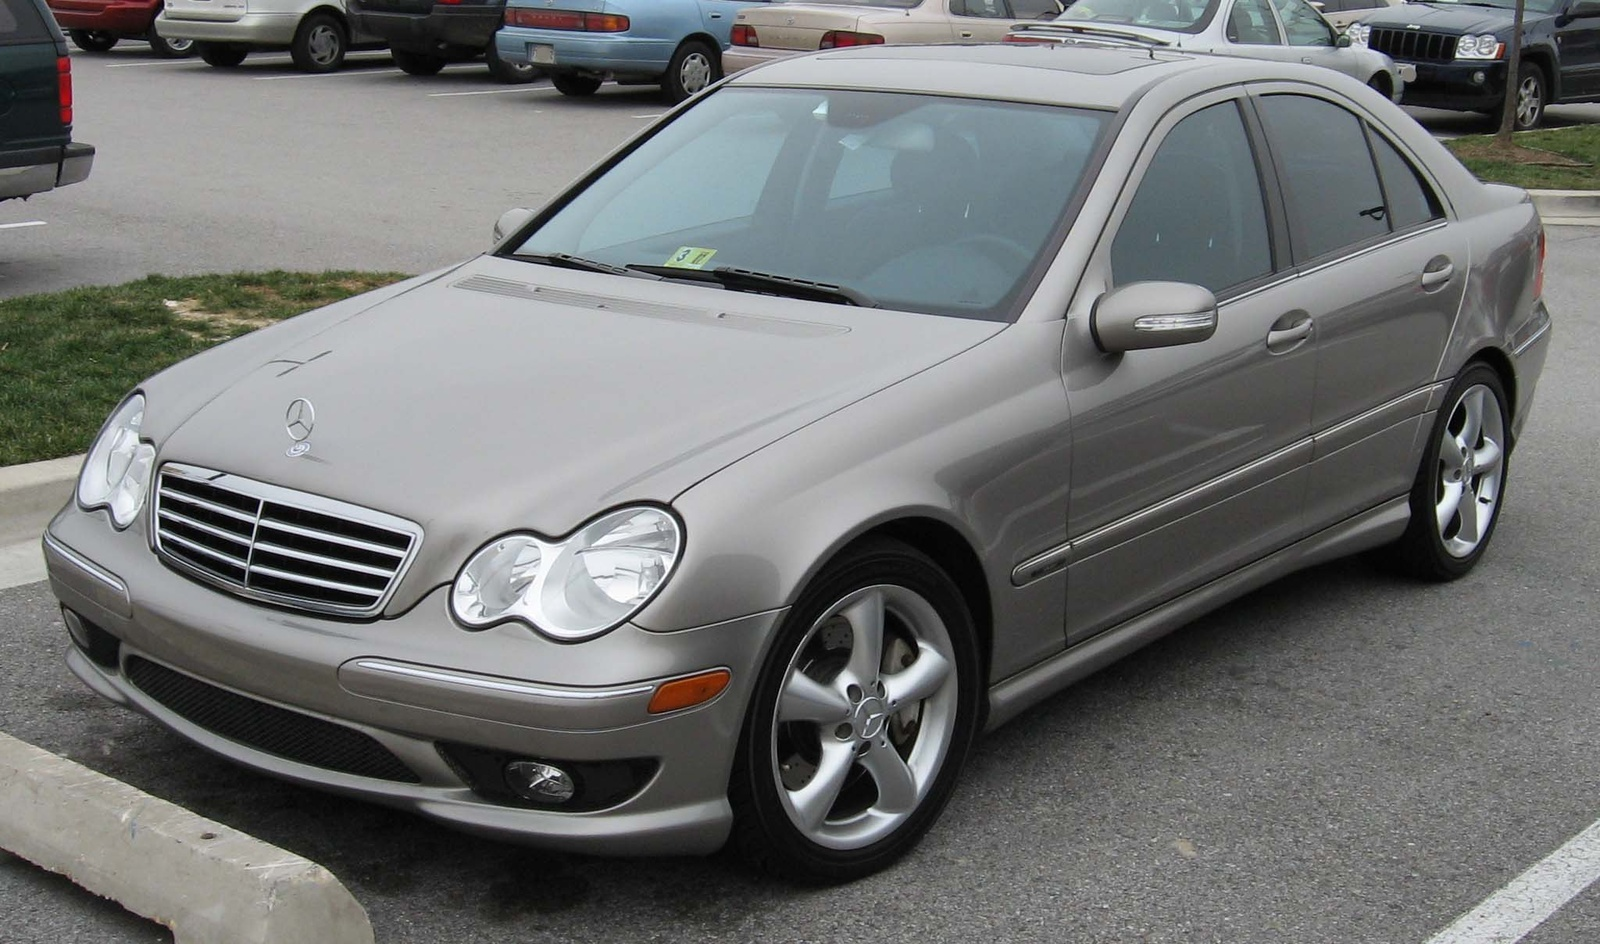 Mercedes-benz C240 2002: Review, Amazing Pictures and ...